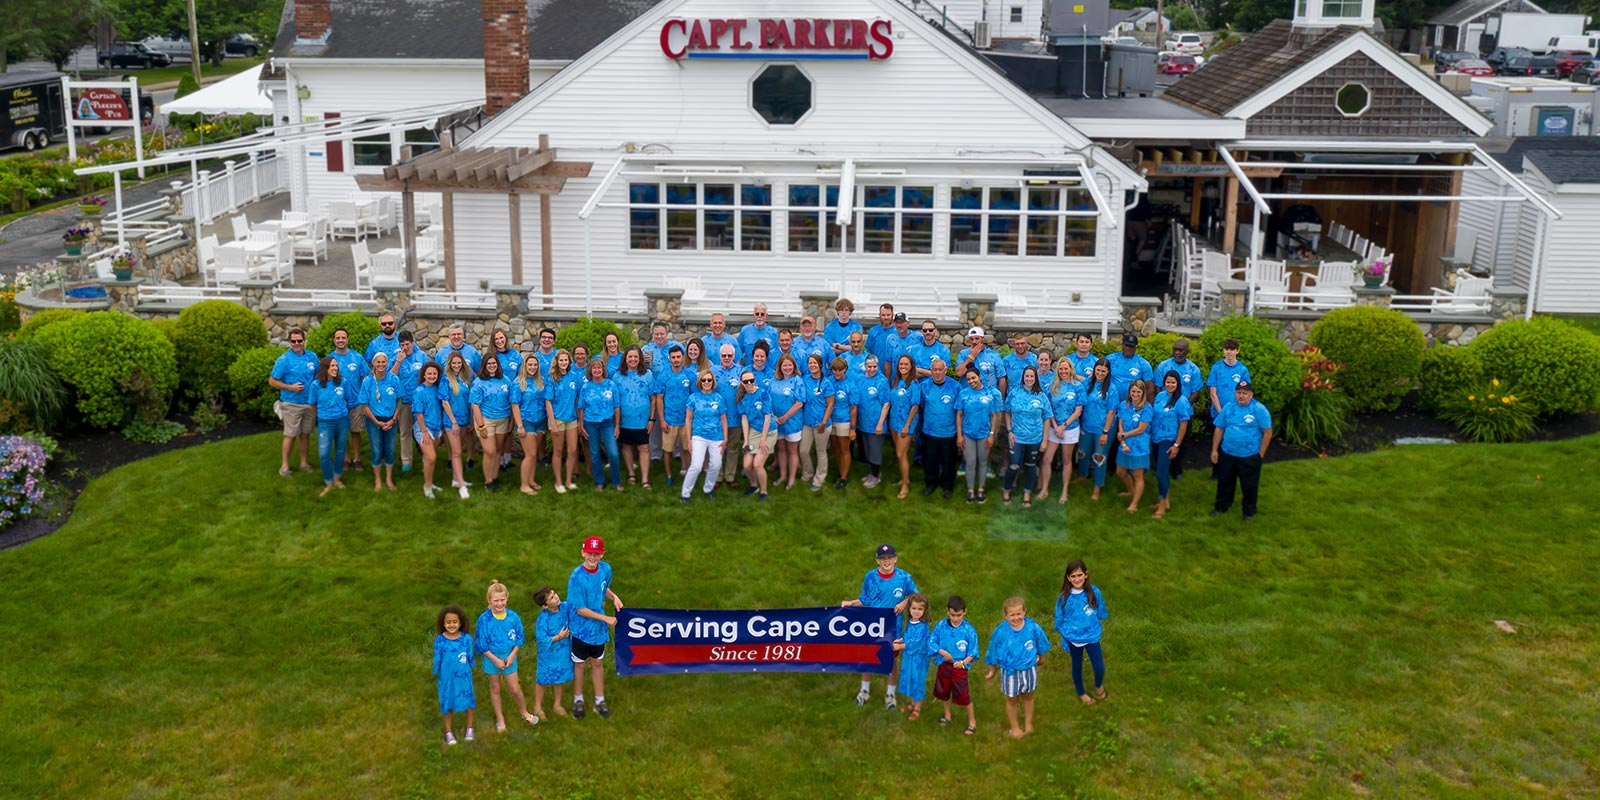 """The entire Captian Parkers staff gathered outside with a banner """"Serving Cape Cod Since 1981"""""""